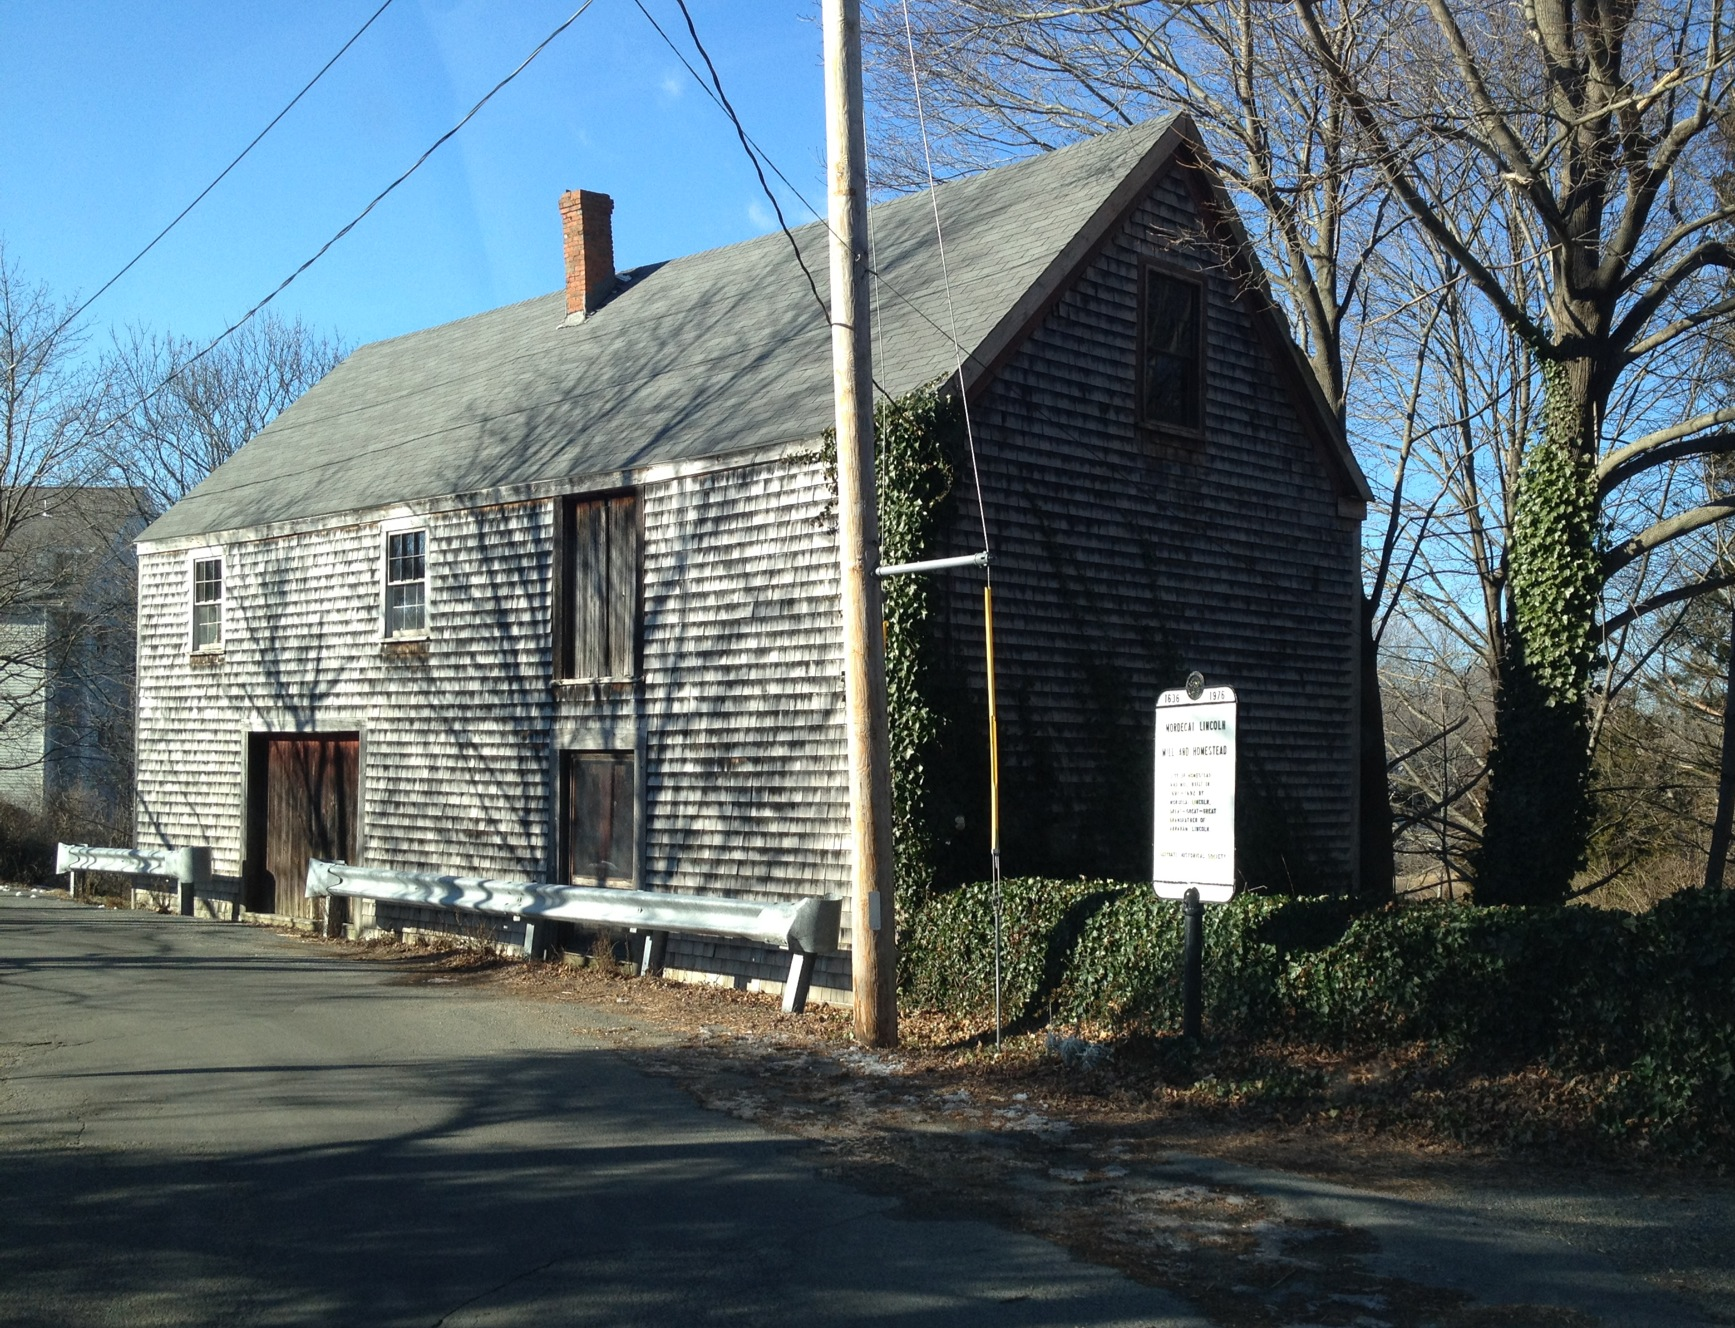 Historical place of the week mordecai lincoln mill and scituate nvjuhfo Gallery